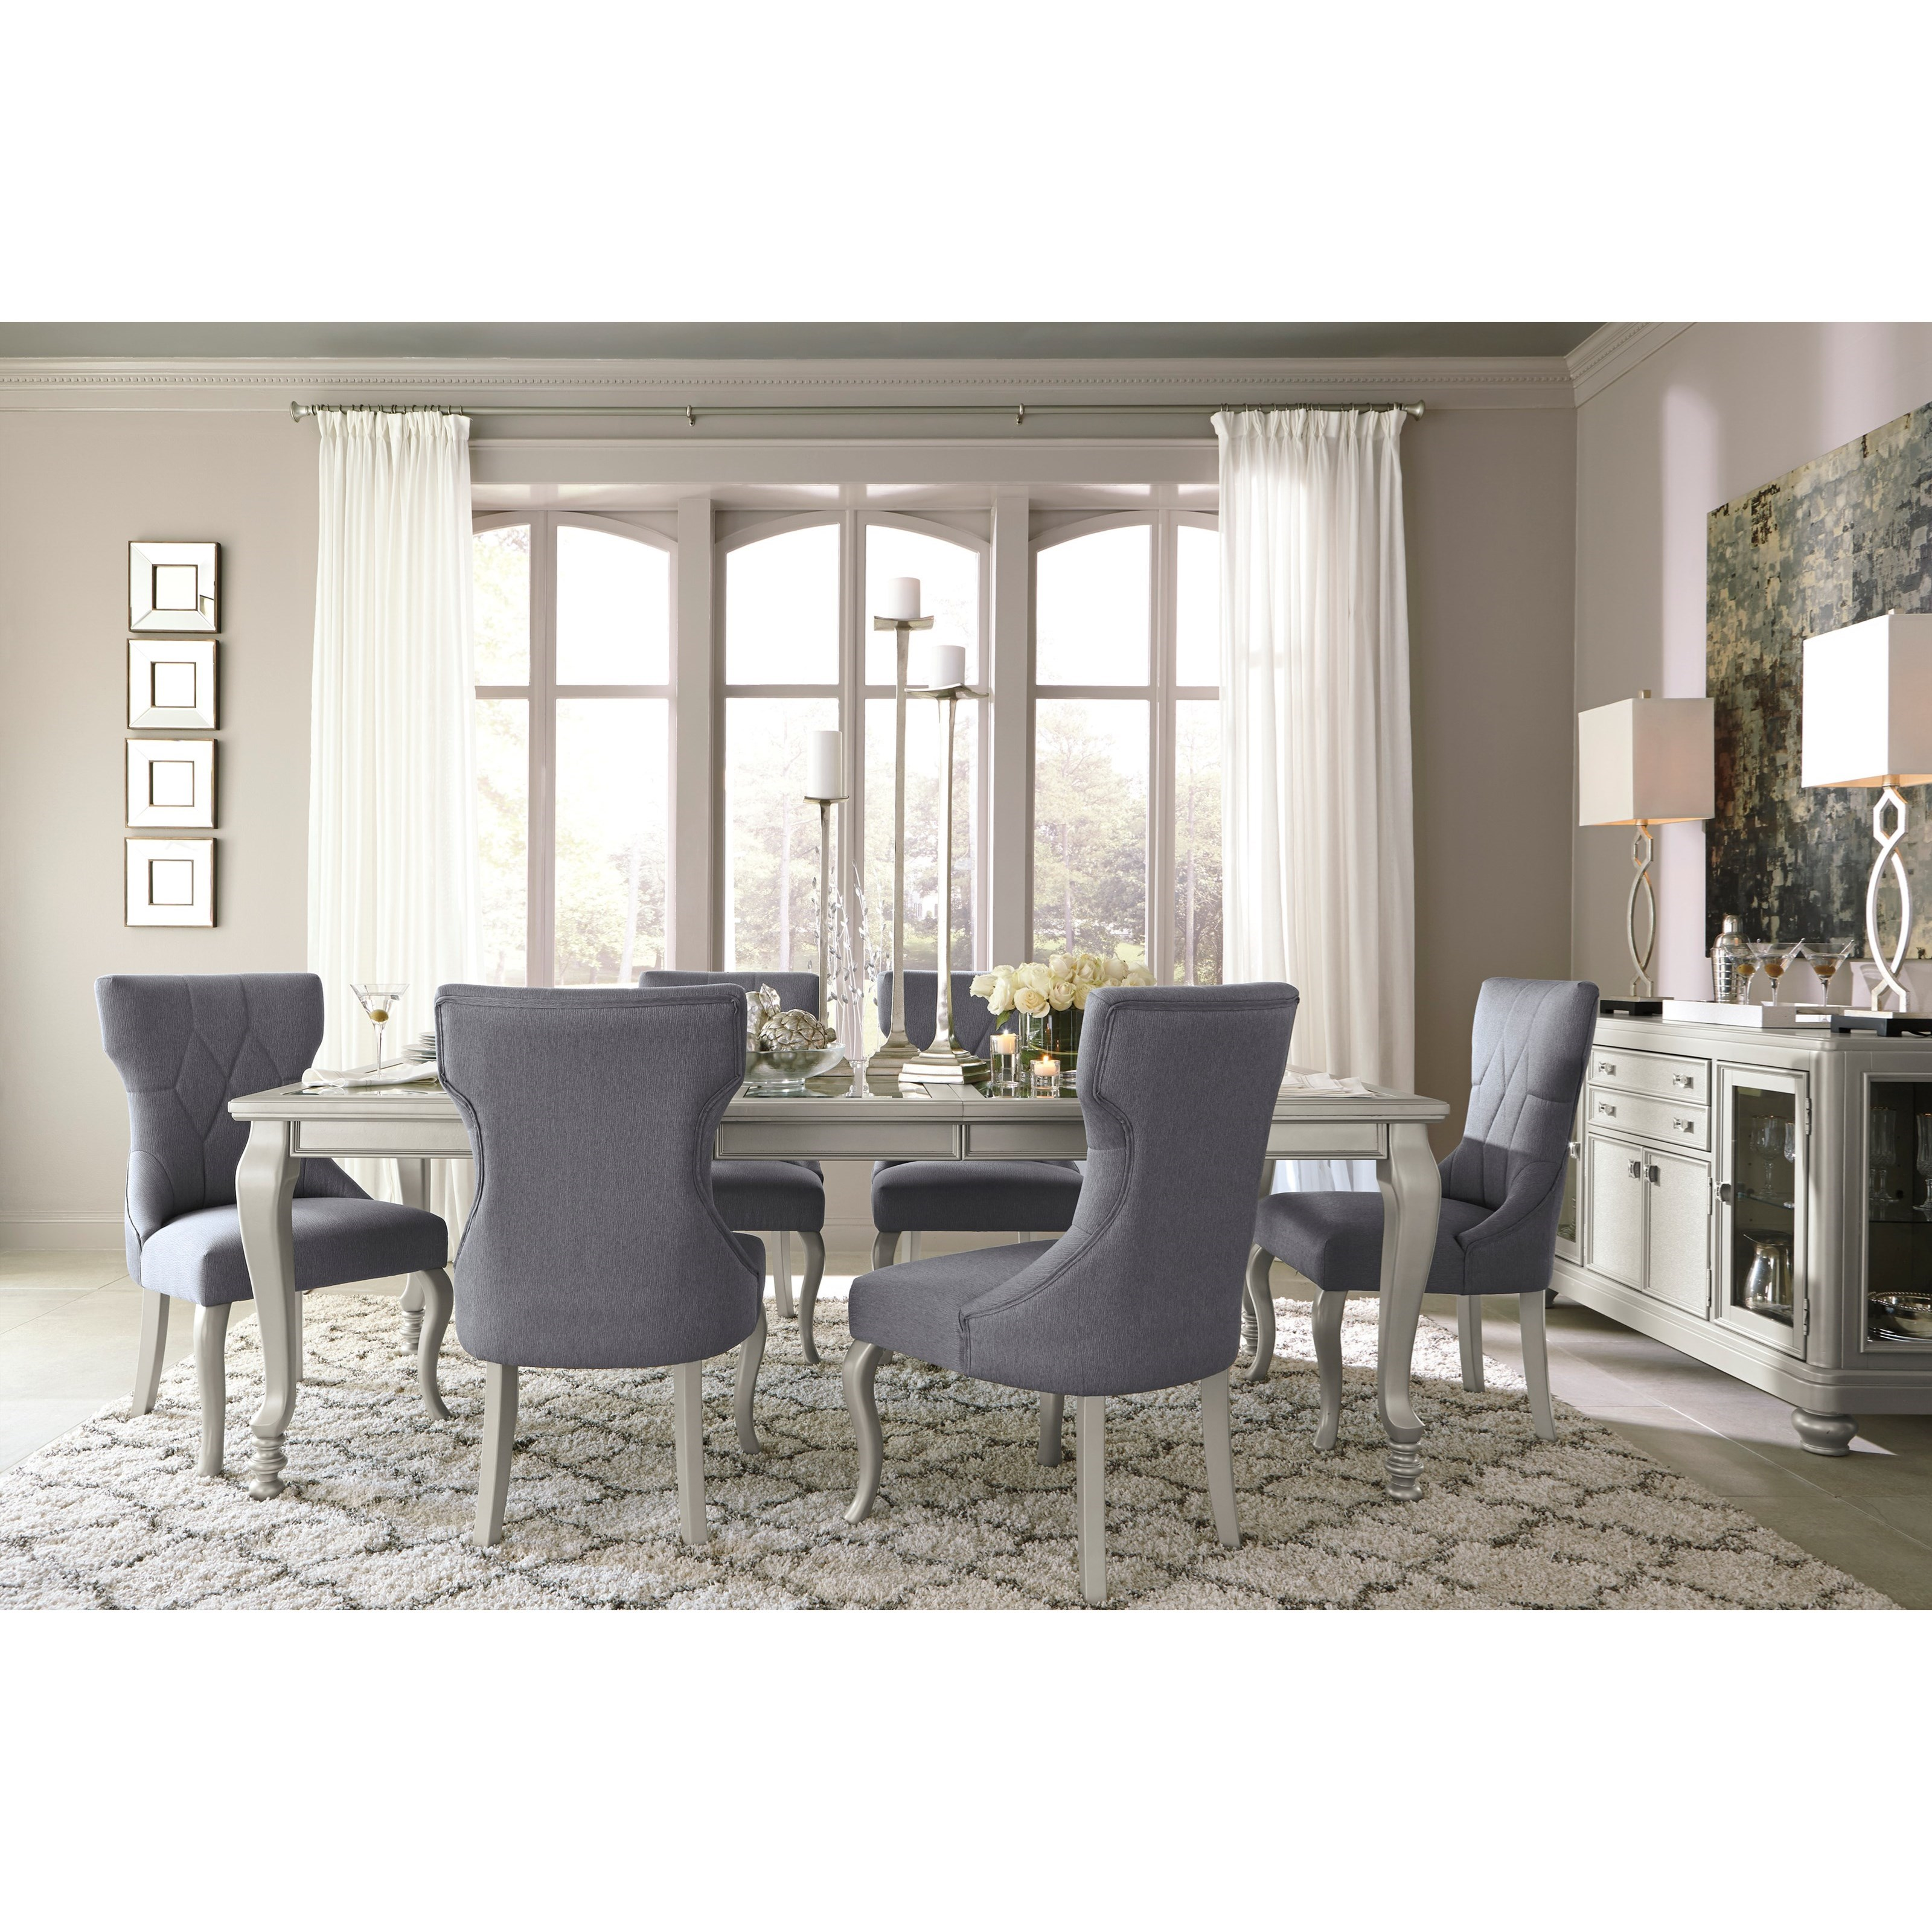 Signature Design By Ashley Besteneer Formal Dining Room: Signature Design By Ashley Coralayne D650-35 Rectangular